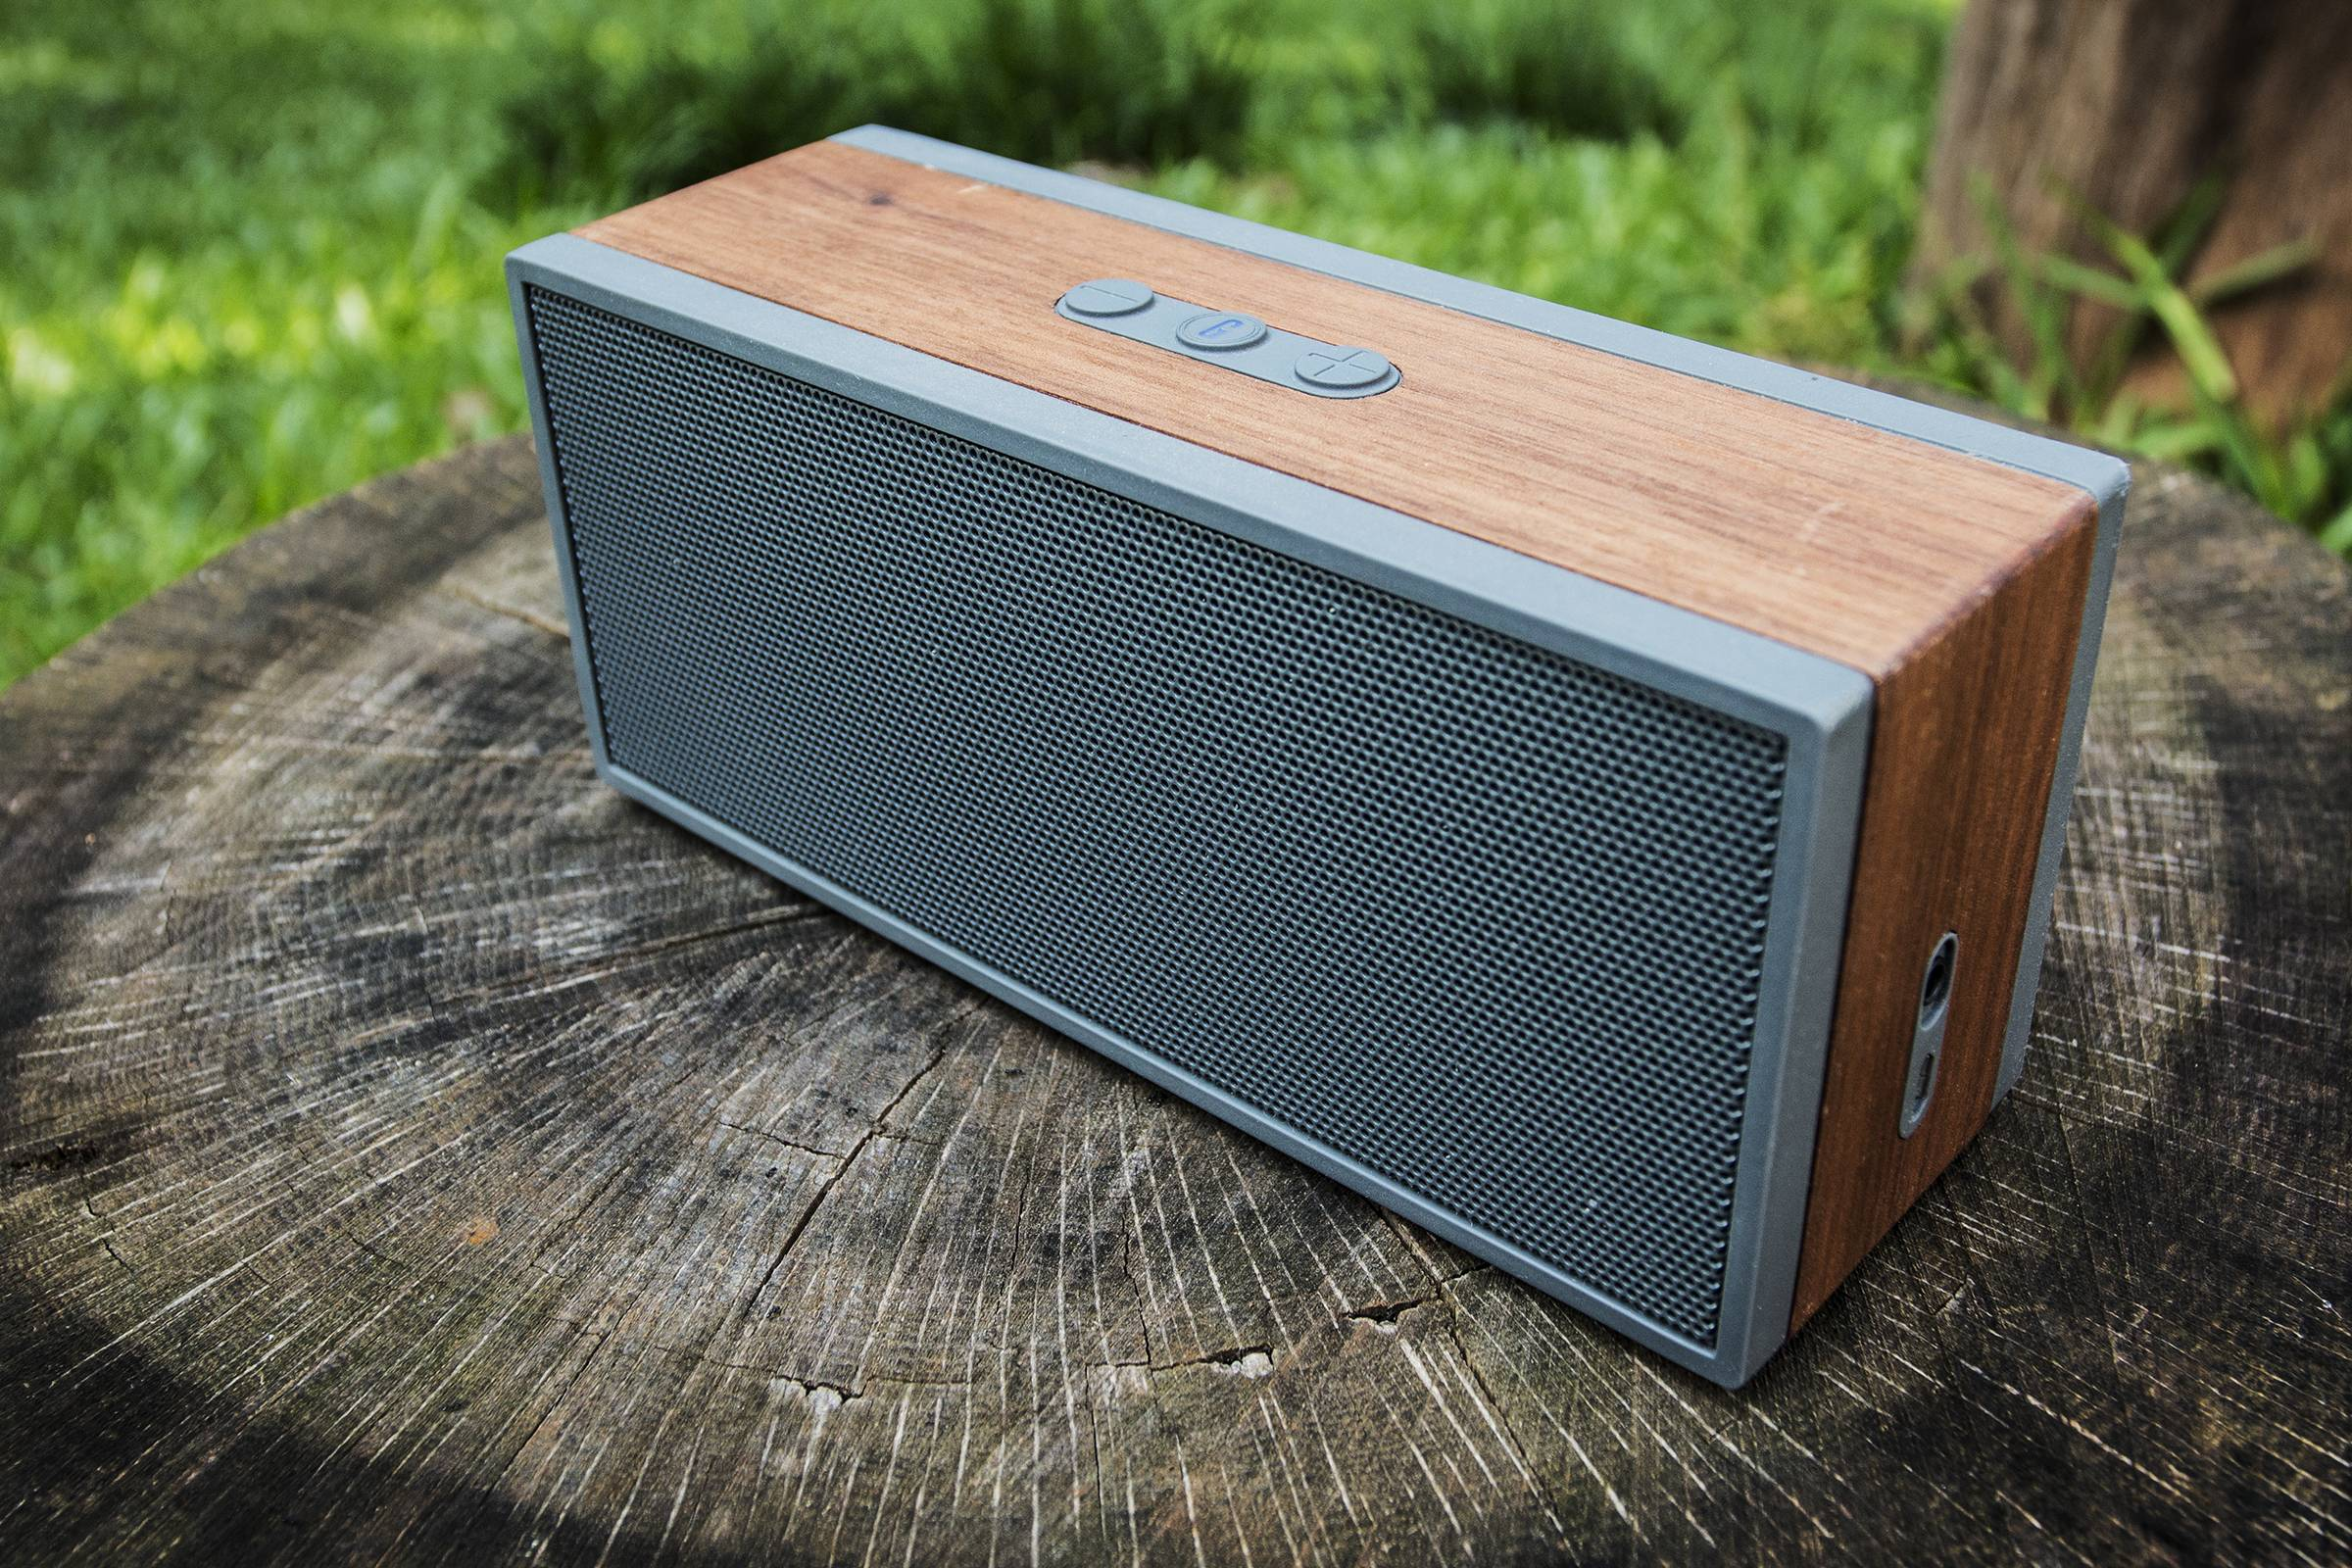 This May 26, 2014 photo shows the Grain Audio Packable Wireless System Bluetooth speaker, in Decatur, Georgia.